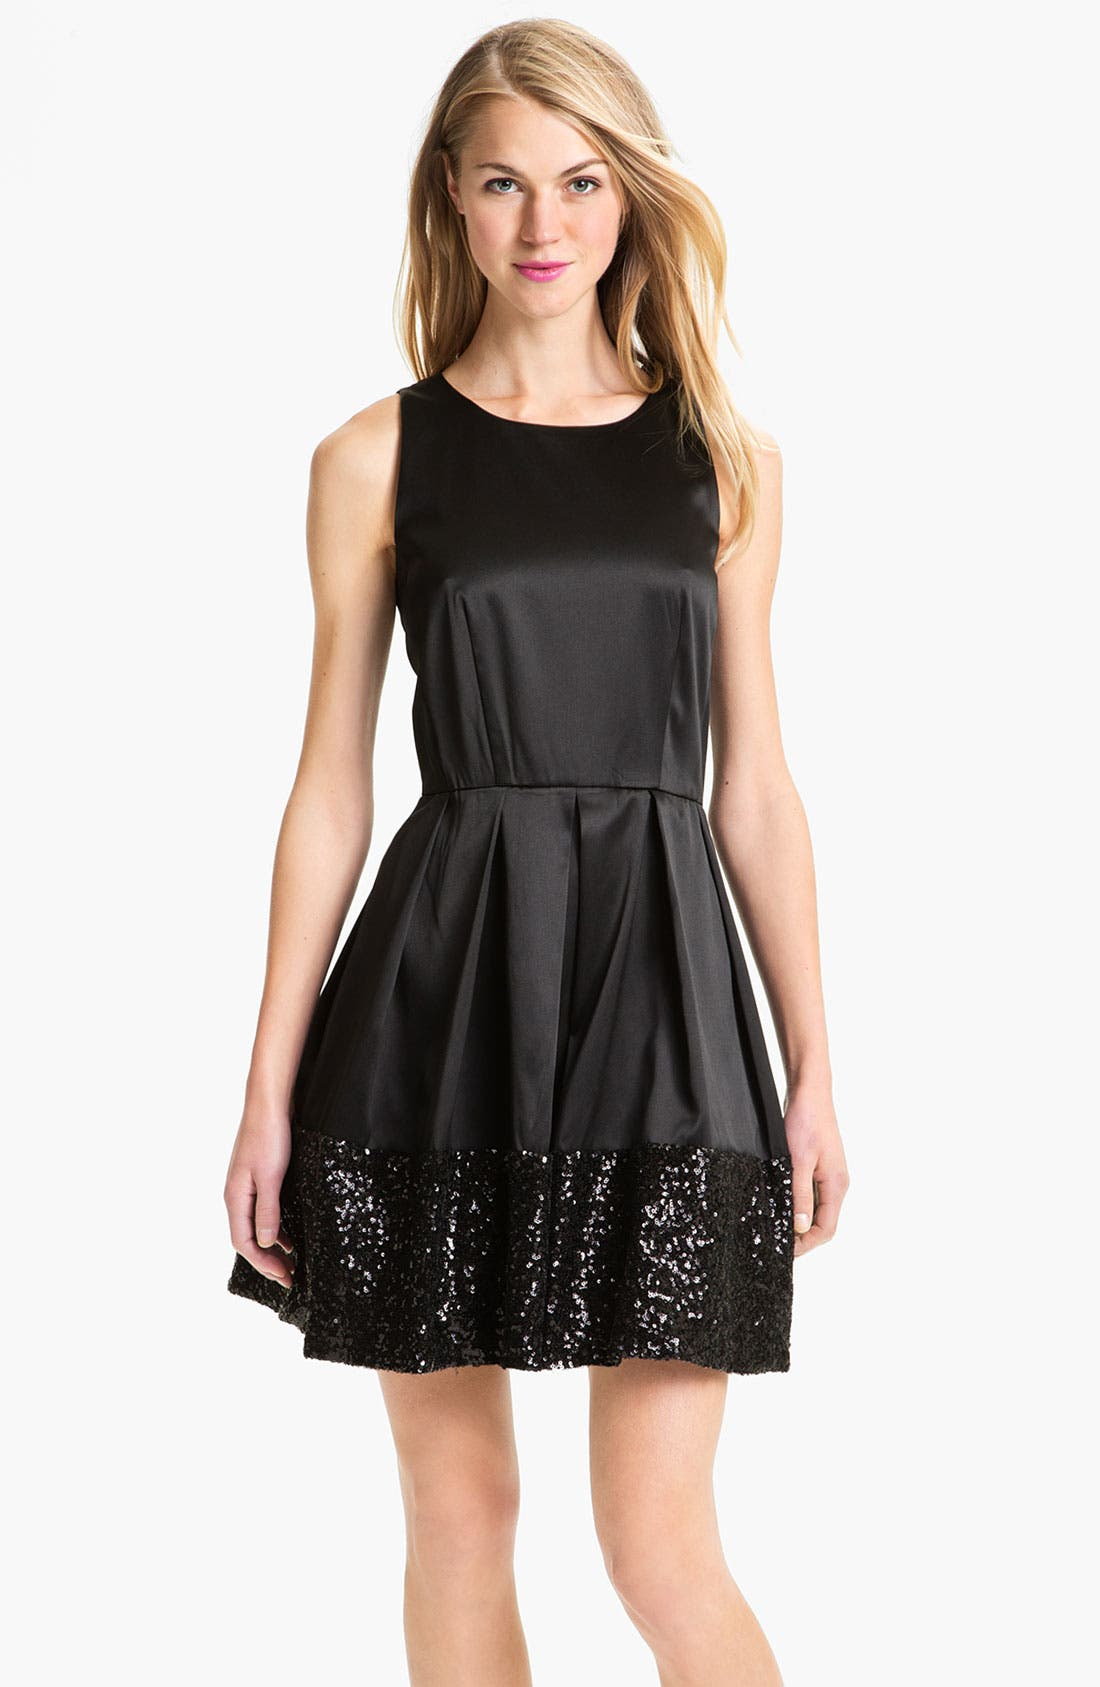 Alternate Image 1 Selected - Taylor Dresses Sequin Hem Satin Fit & Flare Dress